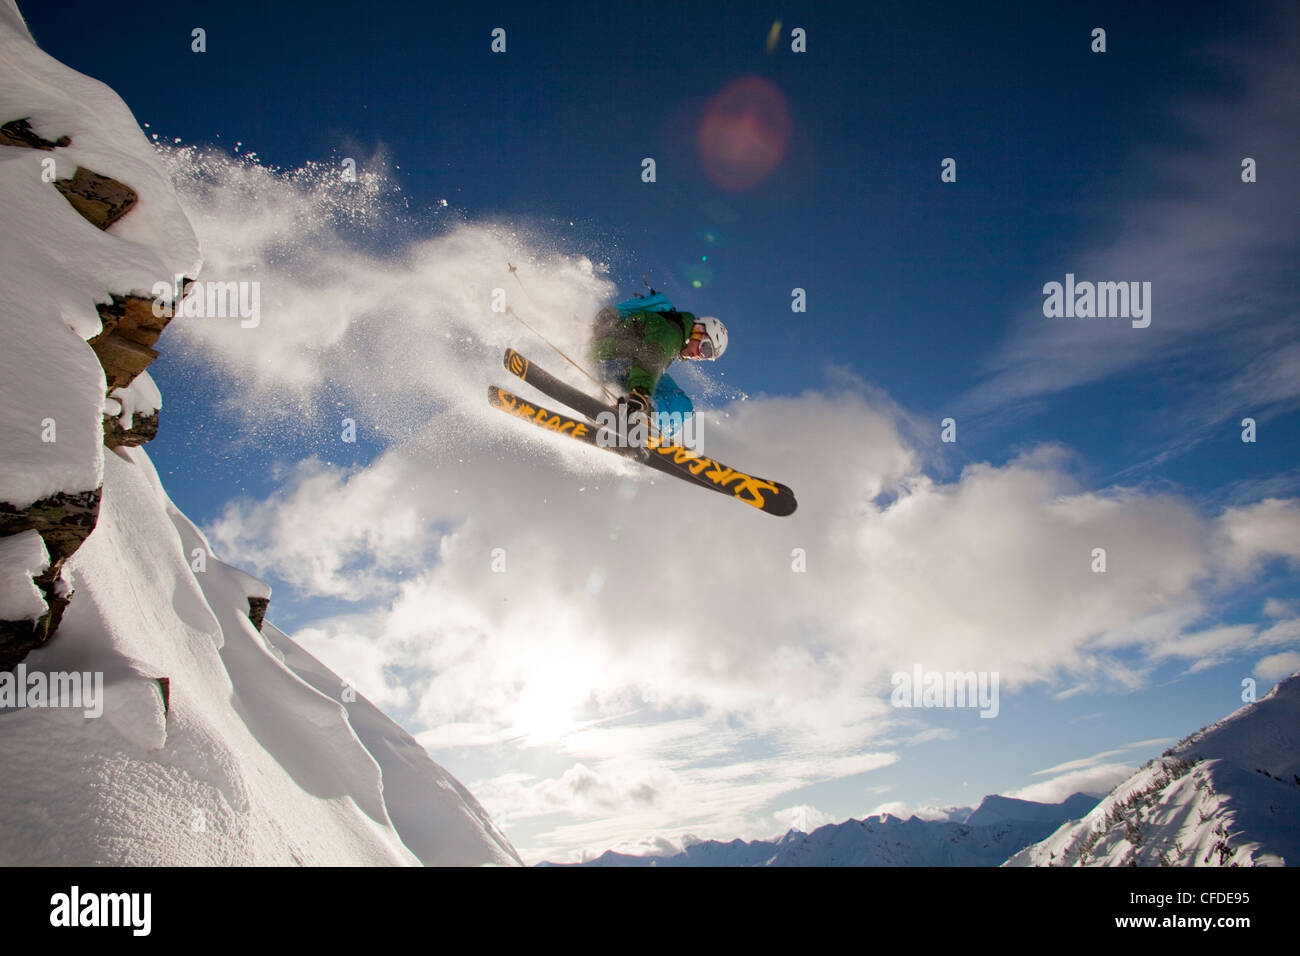 A young male skier airs a cliff in the kicking horse backcountry, Golden, Britsh Columbia, Canada Stock Photo